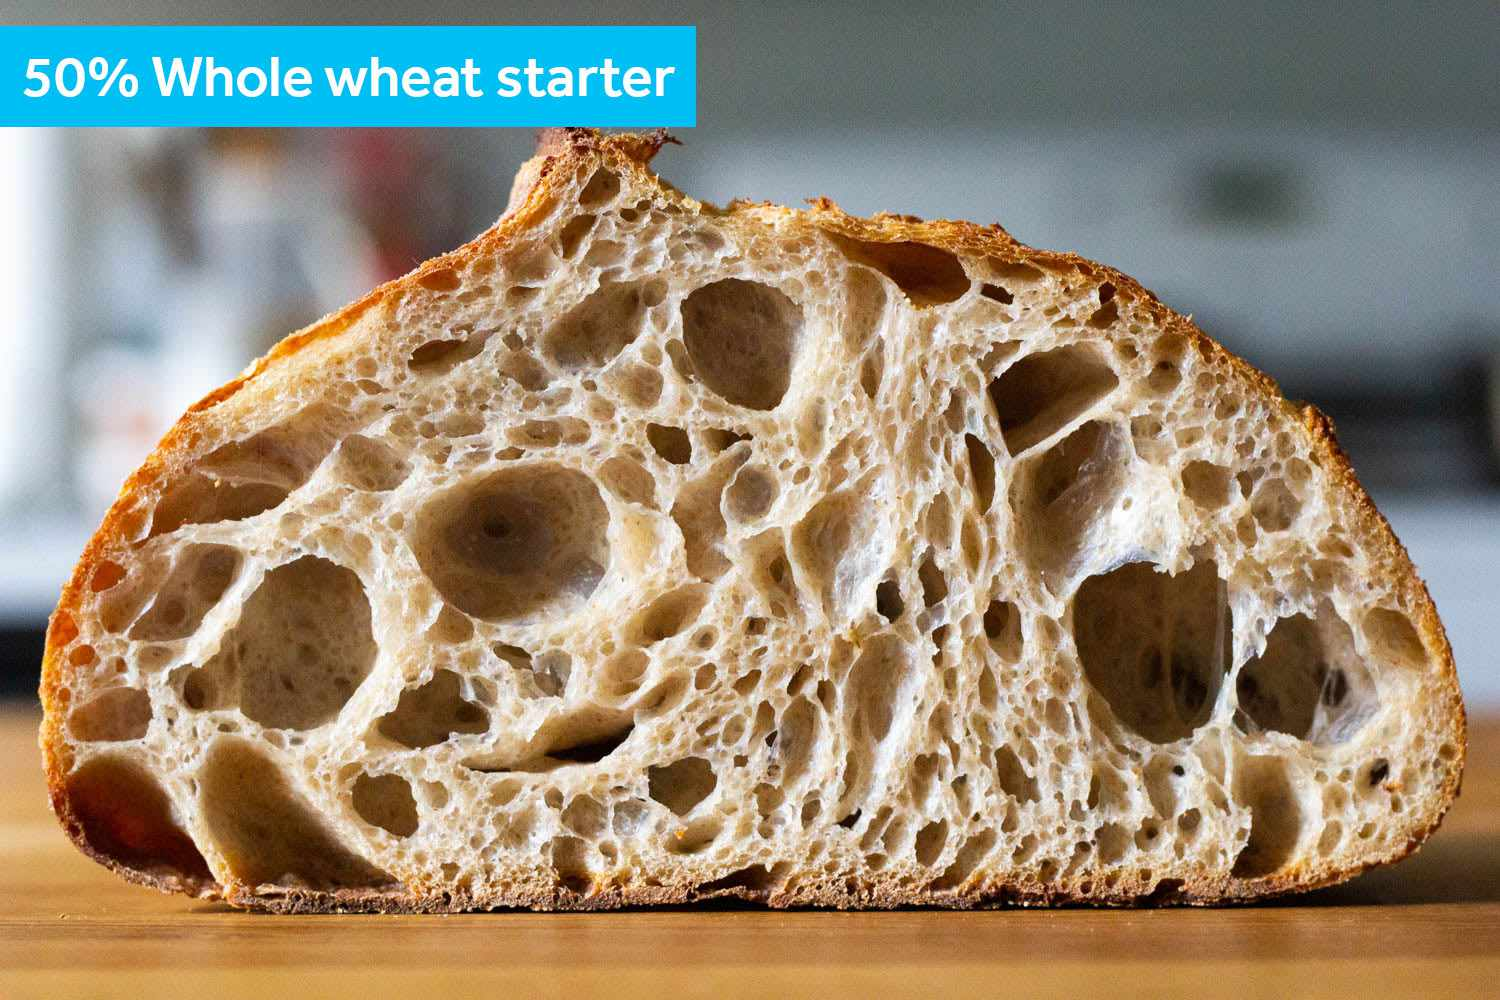 A cross section of the 50-50 whole wheat starter loaf